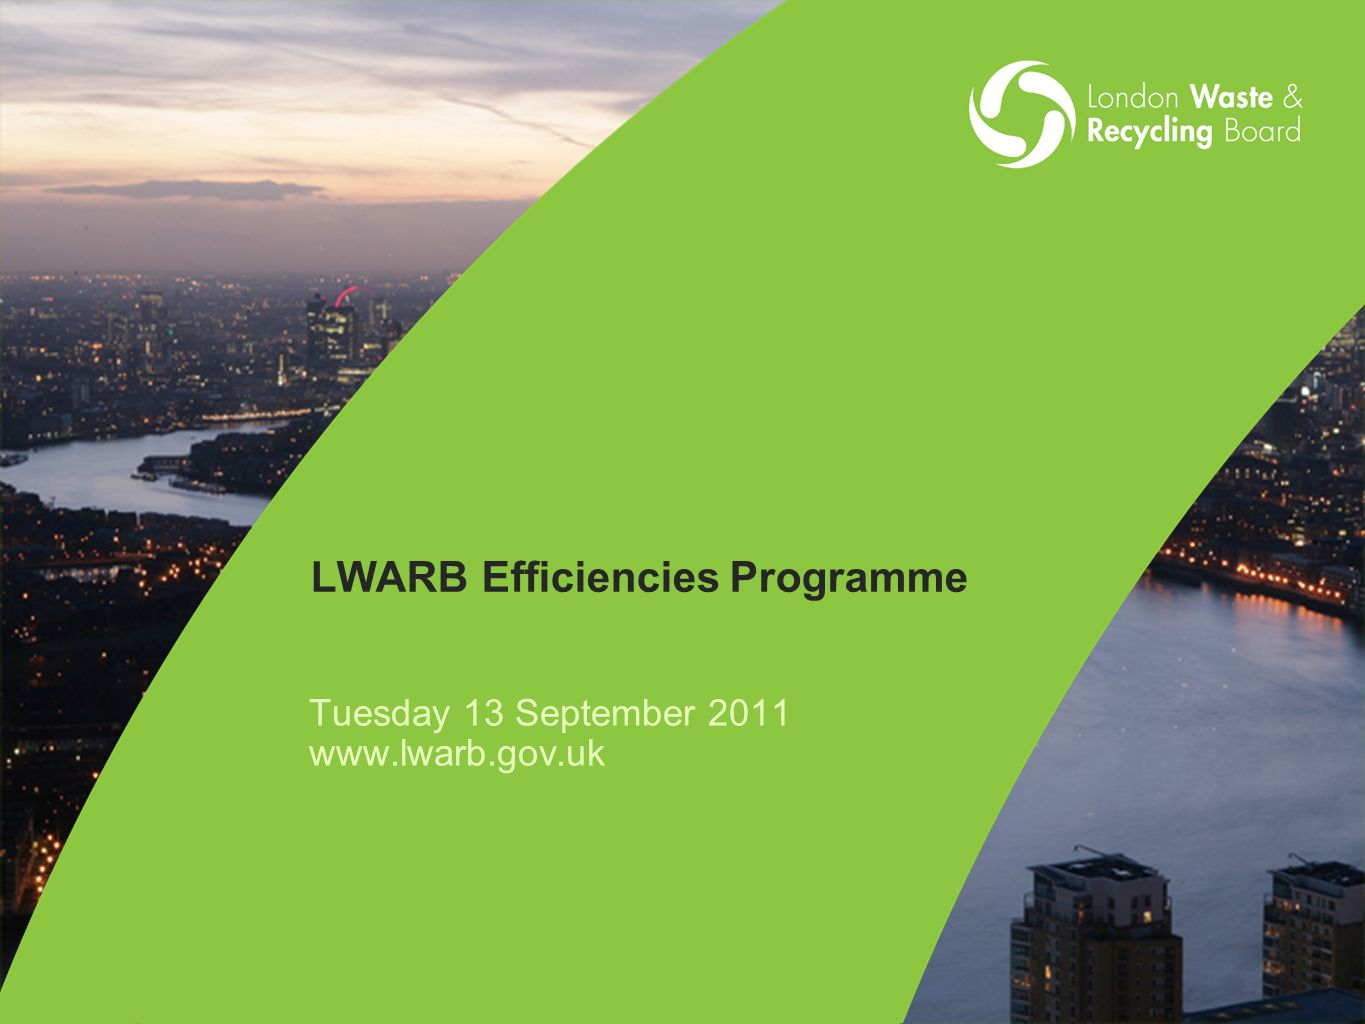 LWARB Efficiencies Programme Tuesday 13 September 2011 www.lwarb.gov.uk